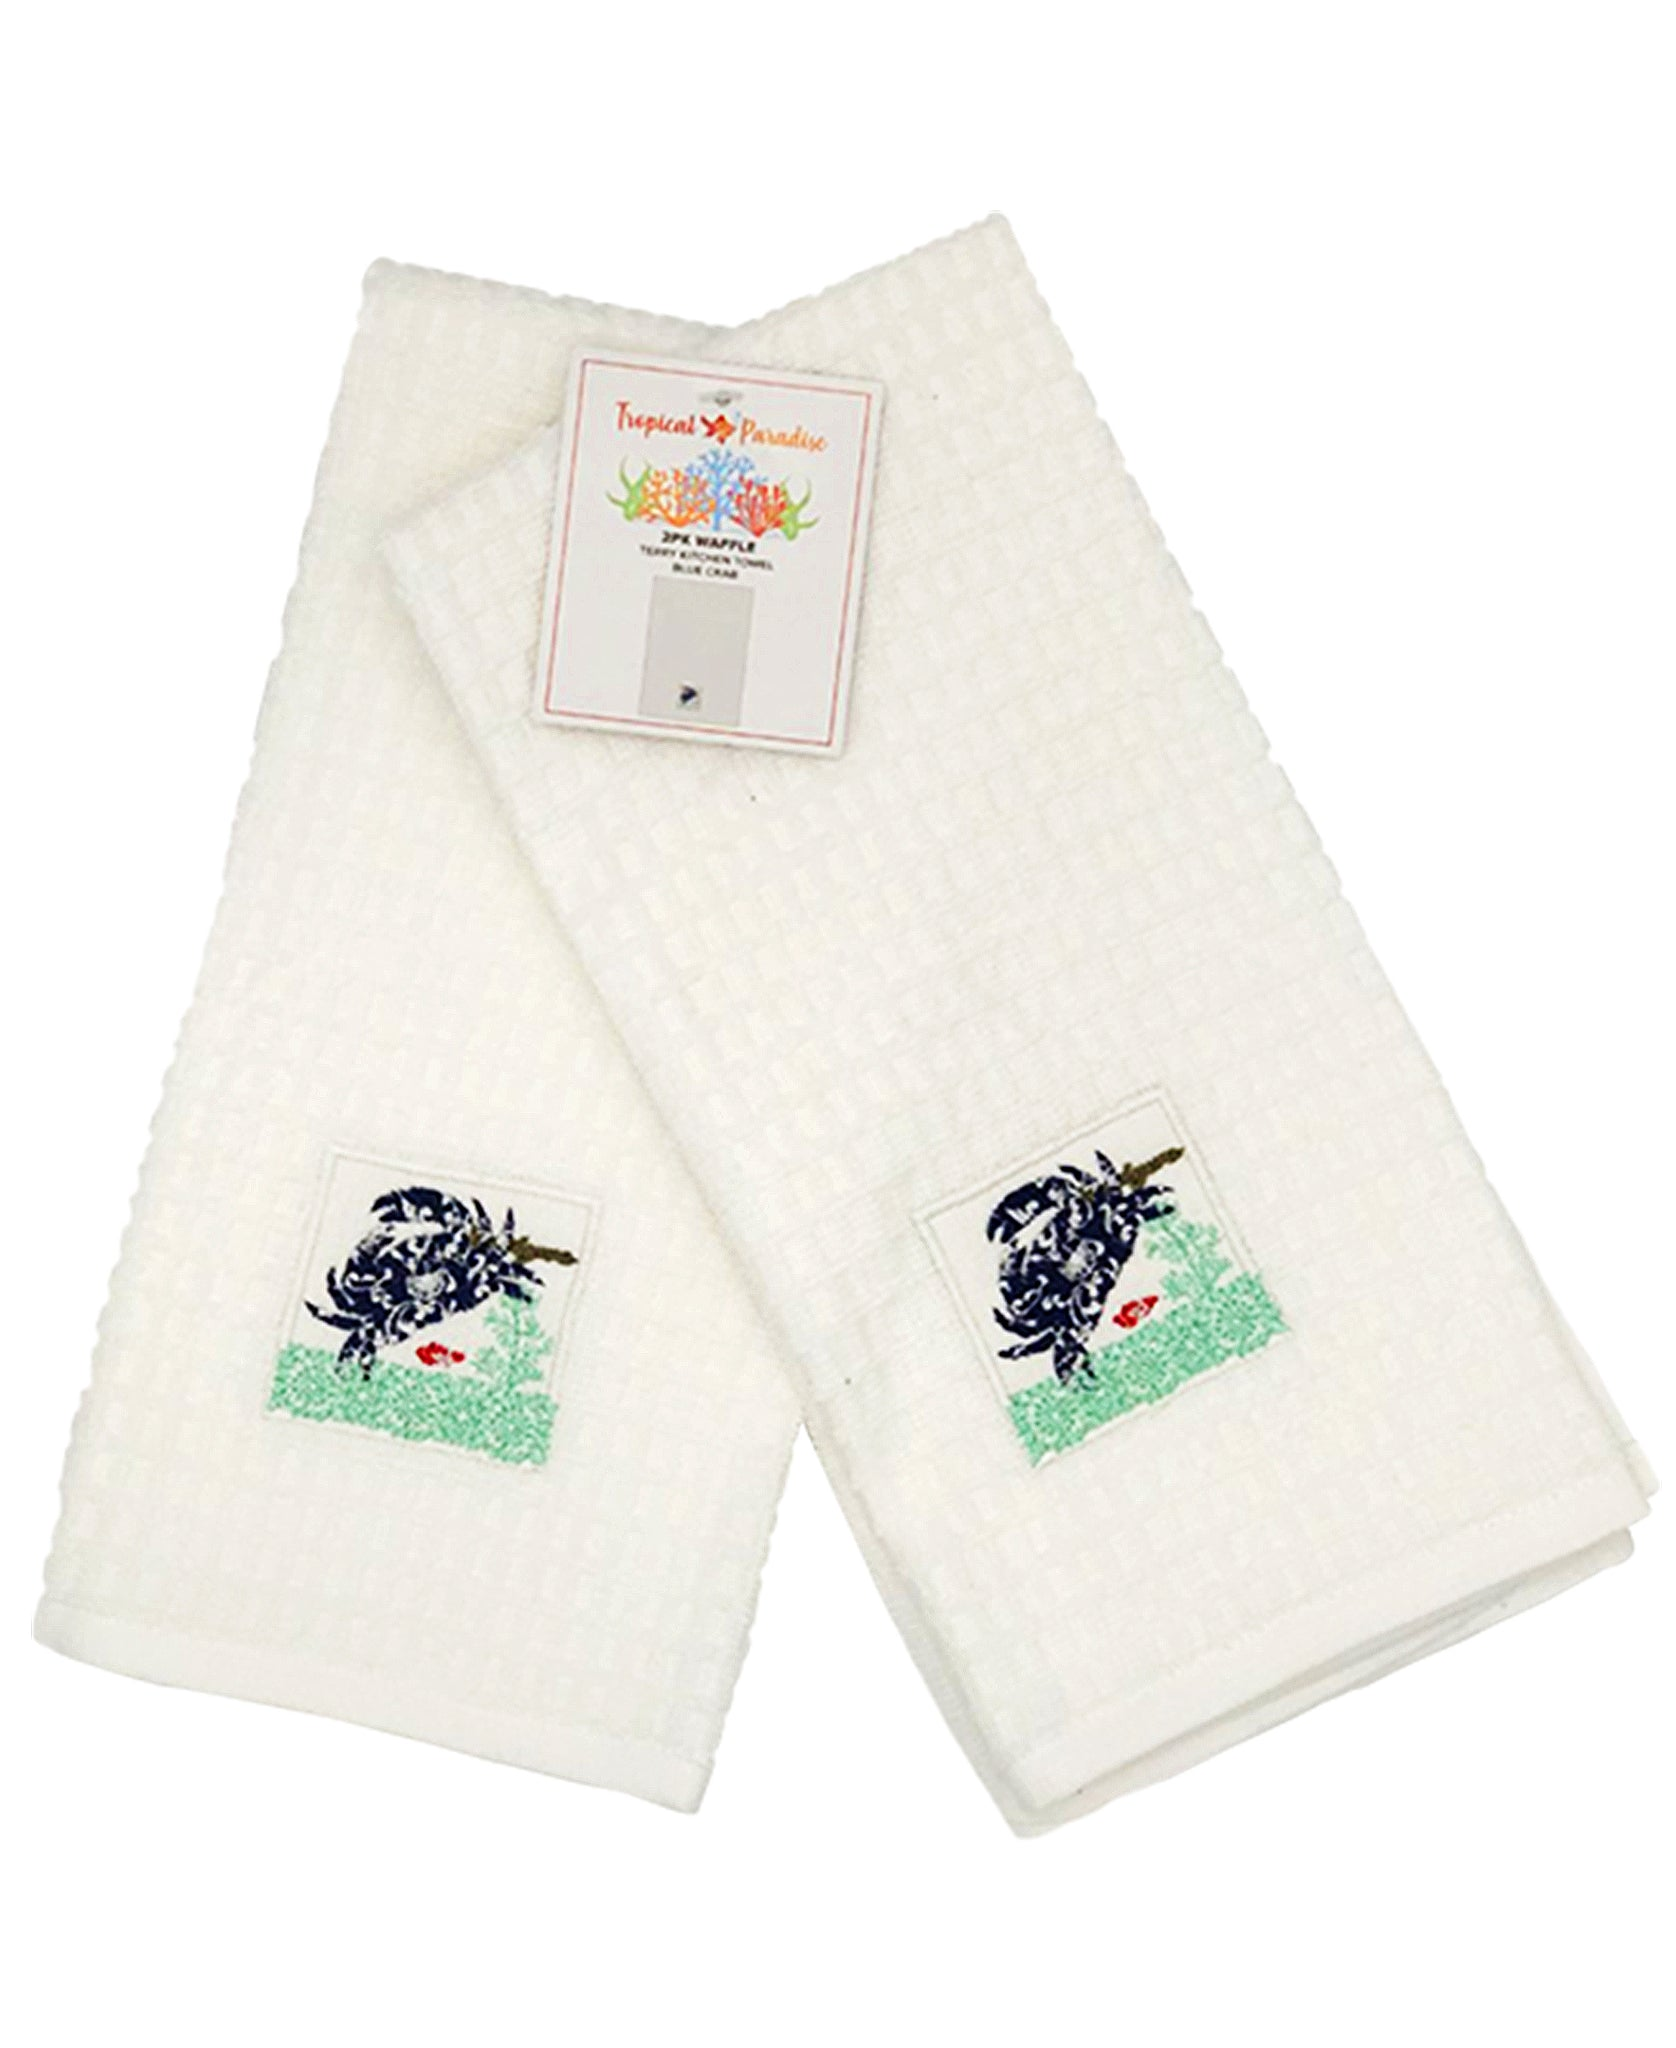 "2 Pack Blue Crab Embroidery Waffle Terry Towel, 16"" X 24"" Mod Lifestyles"